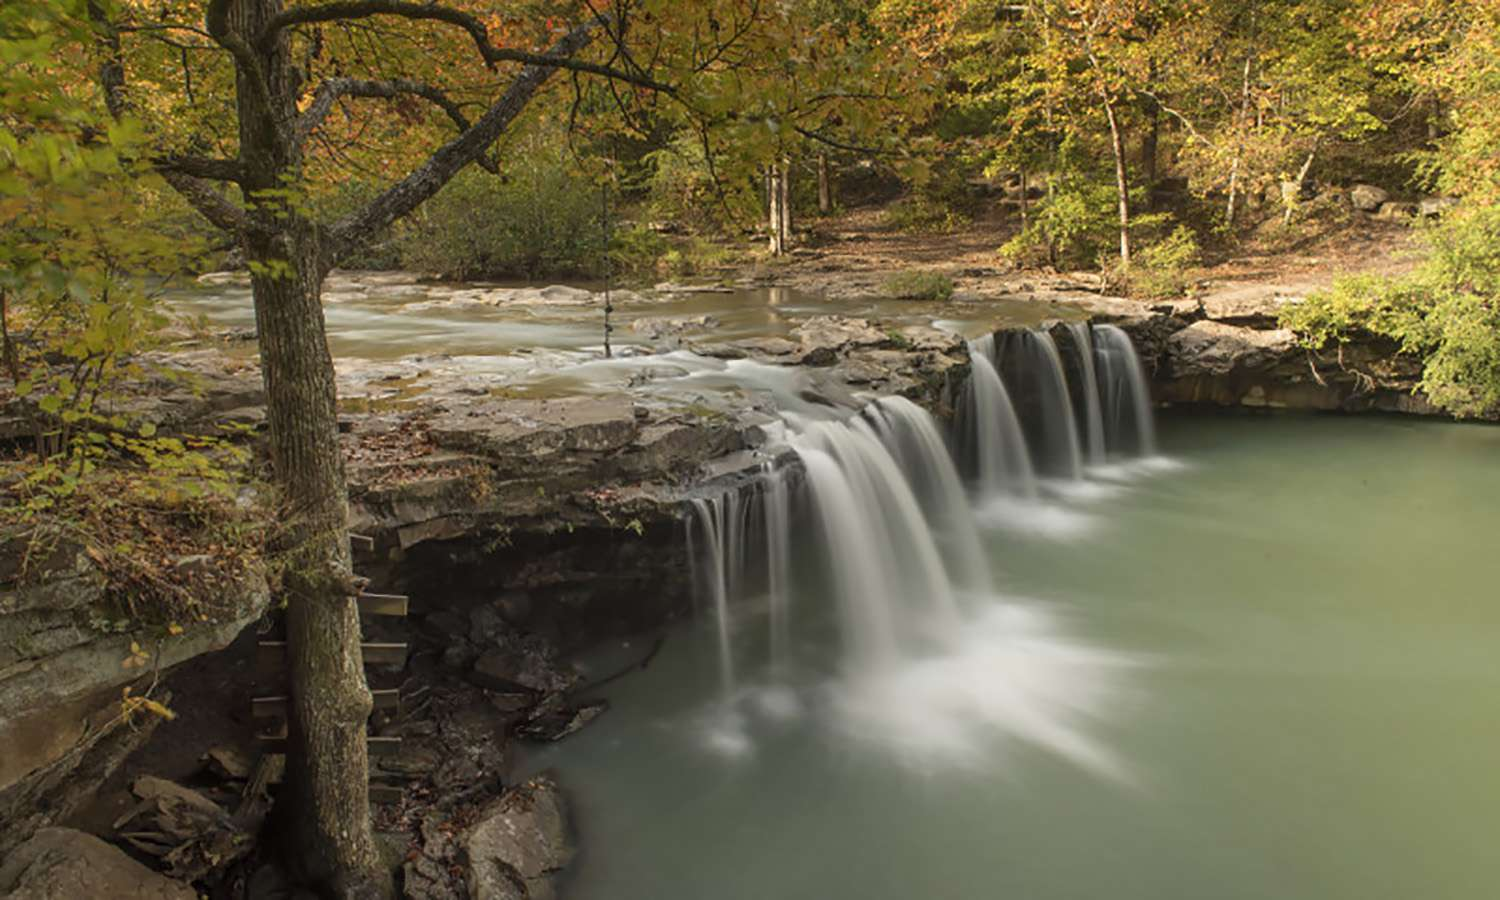 One of the most beautiful waterfalls in Arkansas.